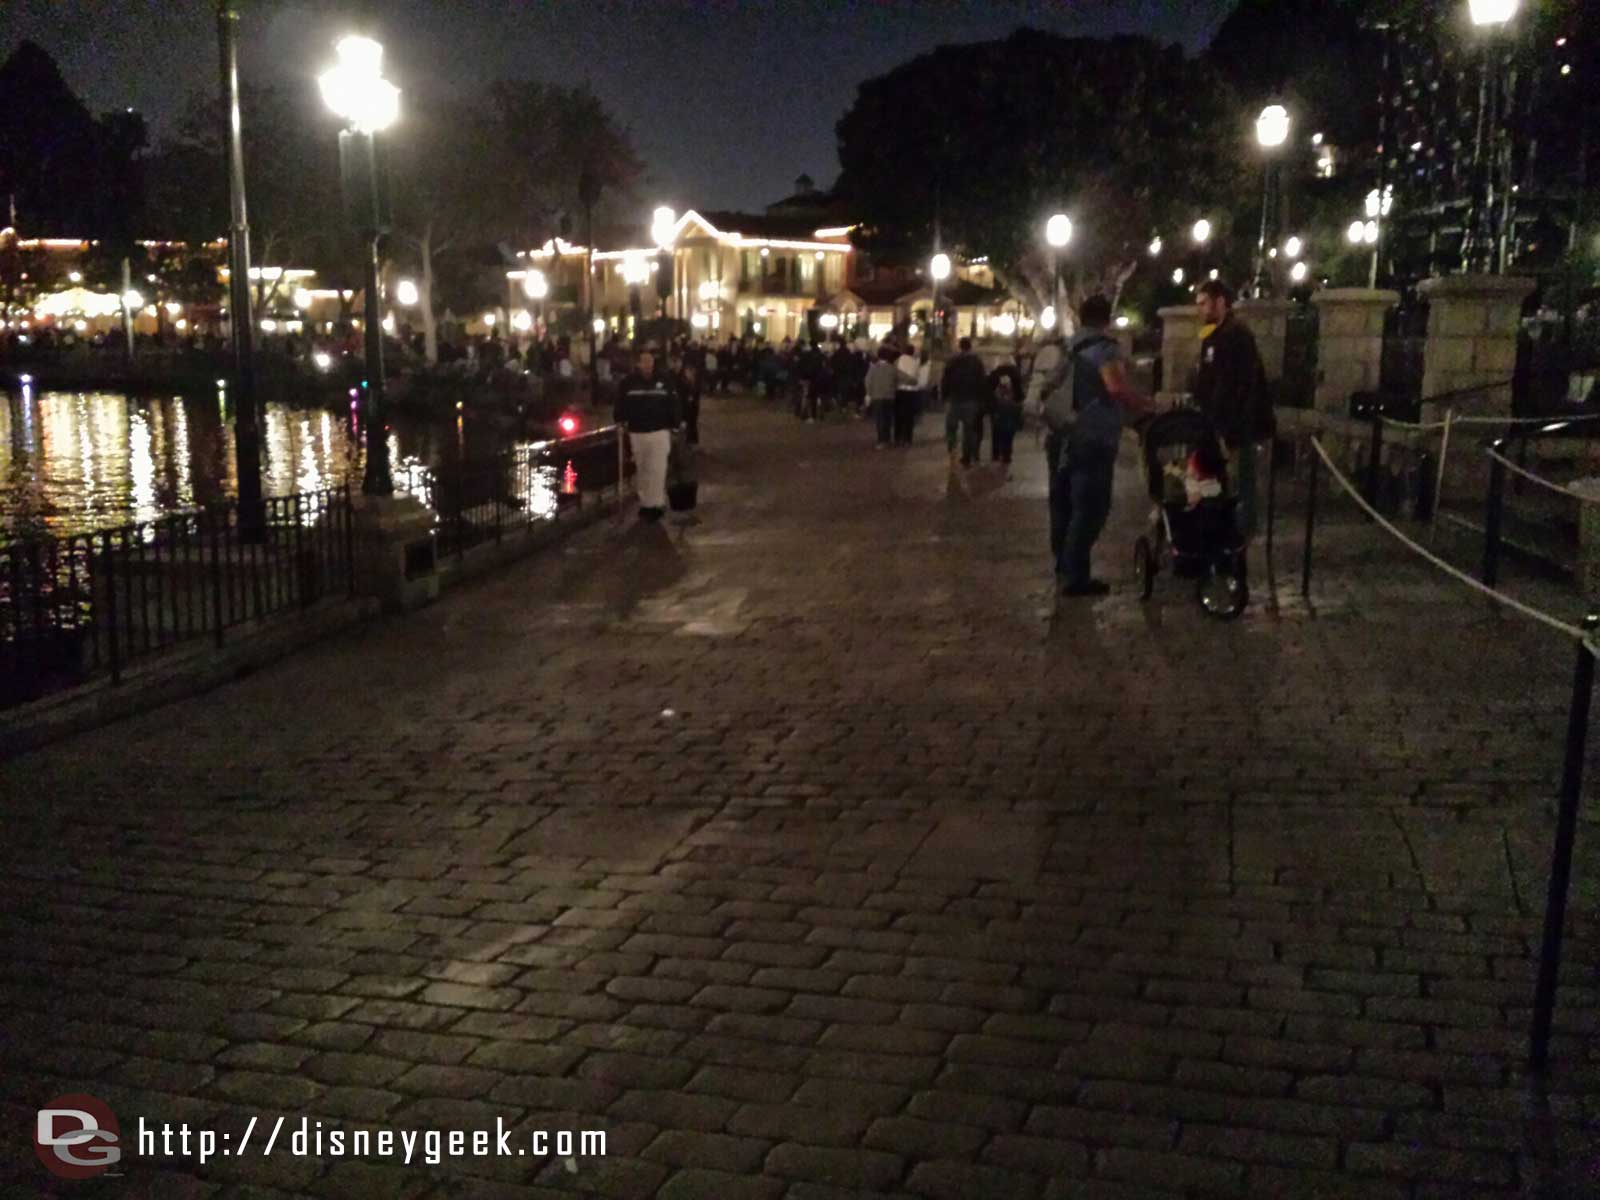 It seems odd to walk along a nearly empty Rivers of America after dark on a #Fantasmic night #Disneyland